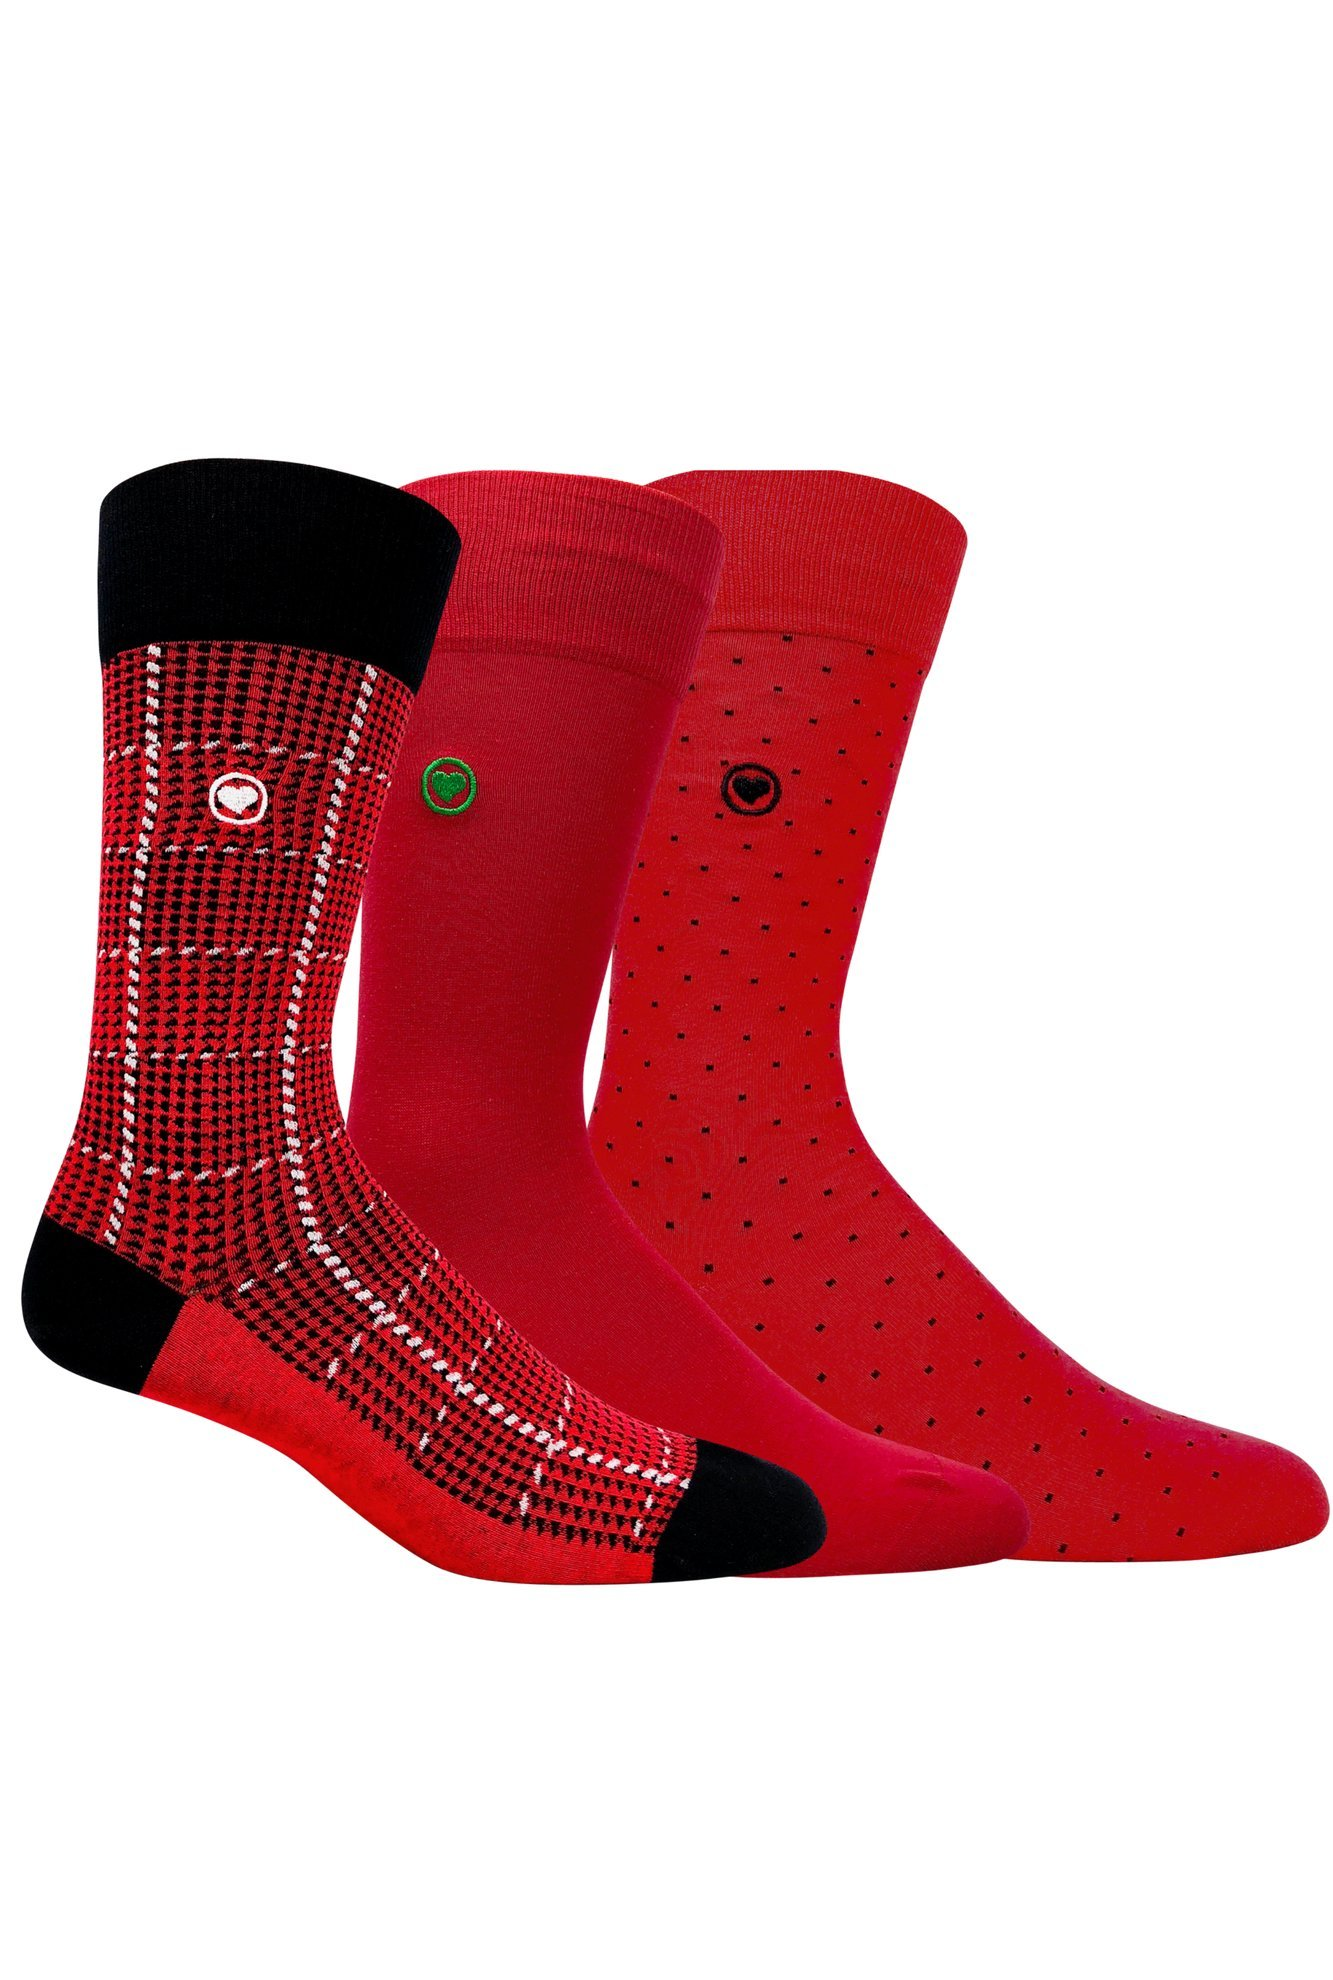 Men's dress socks bundle. Red socks. 3 pack premium super soft mens organic cotton patterned dress socks